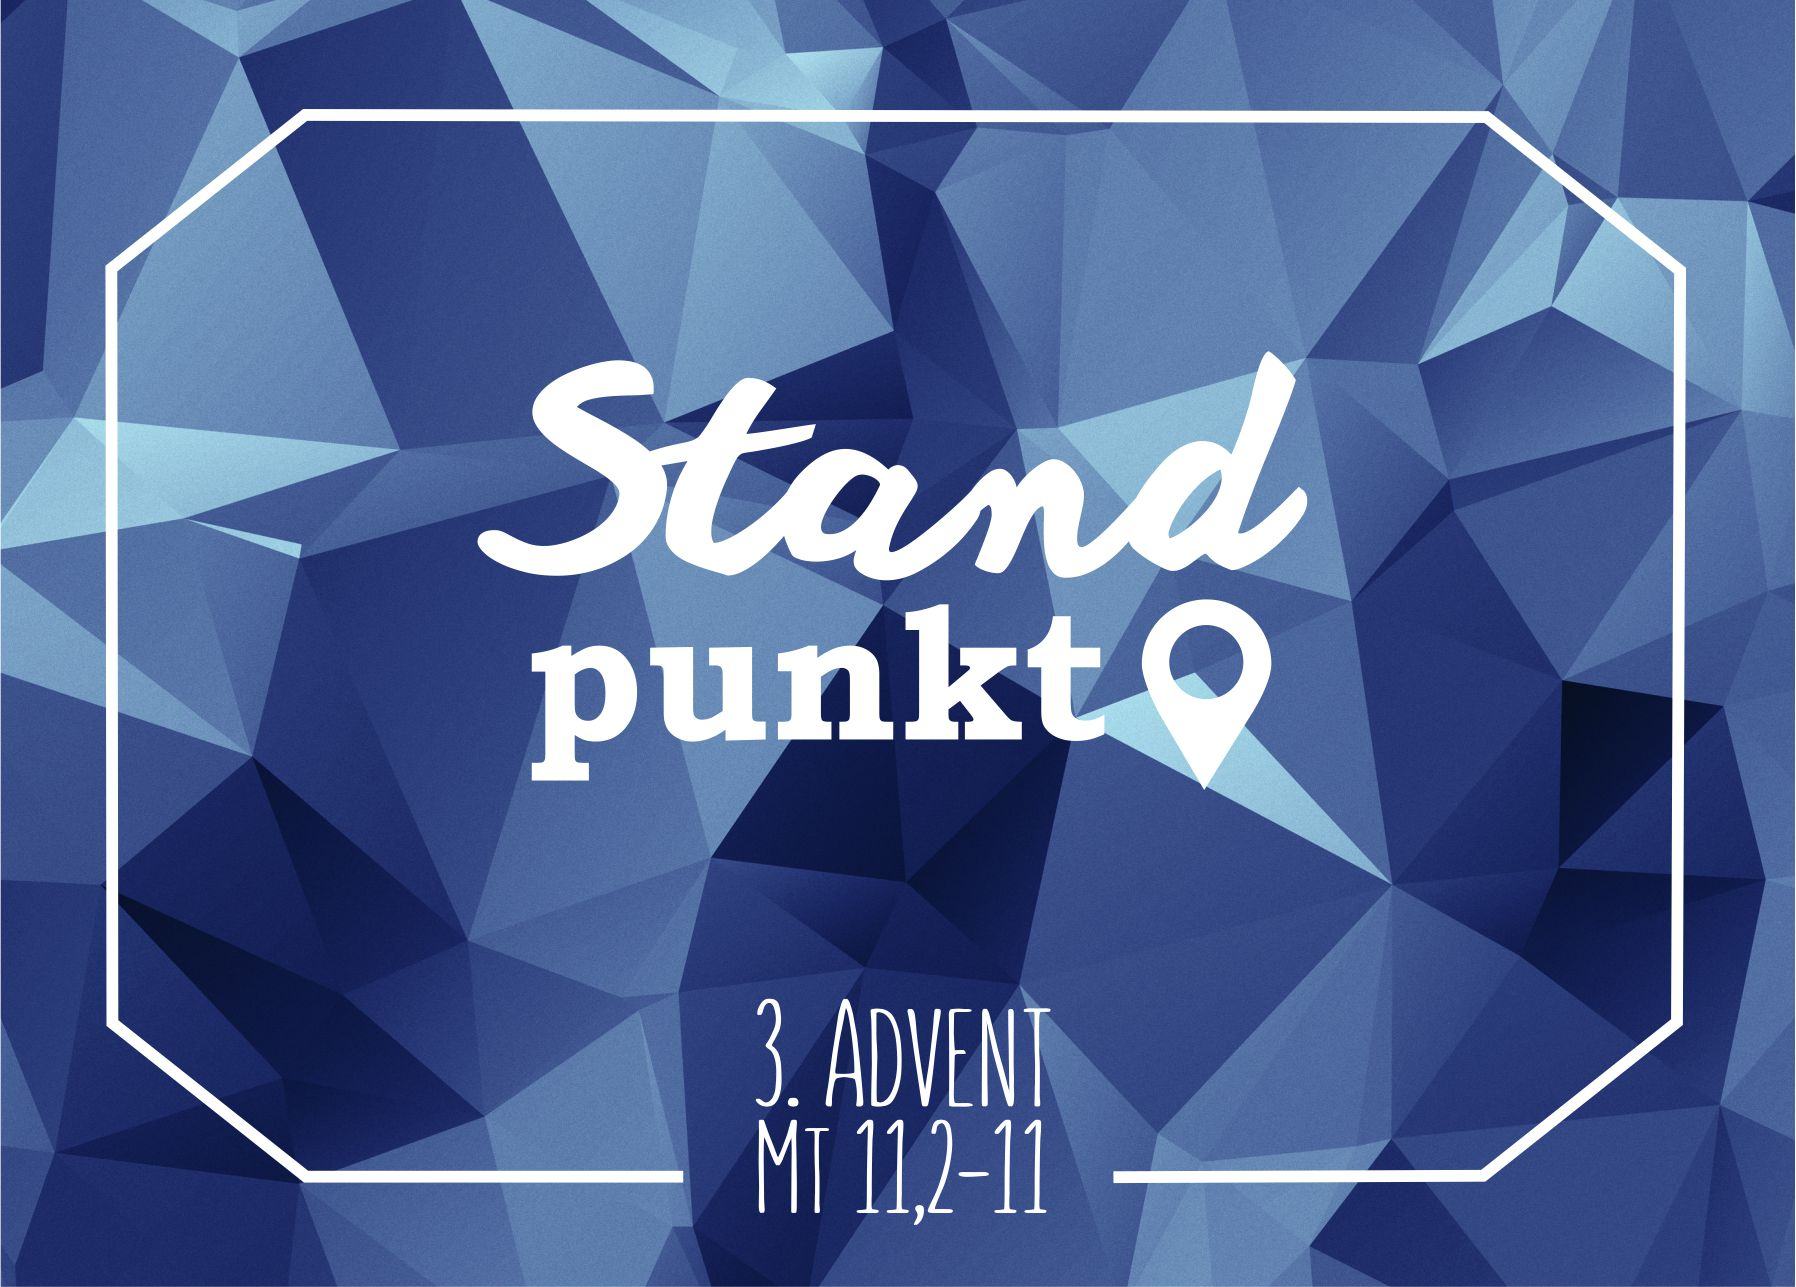 3. Advent - Standpunkt